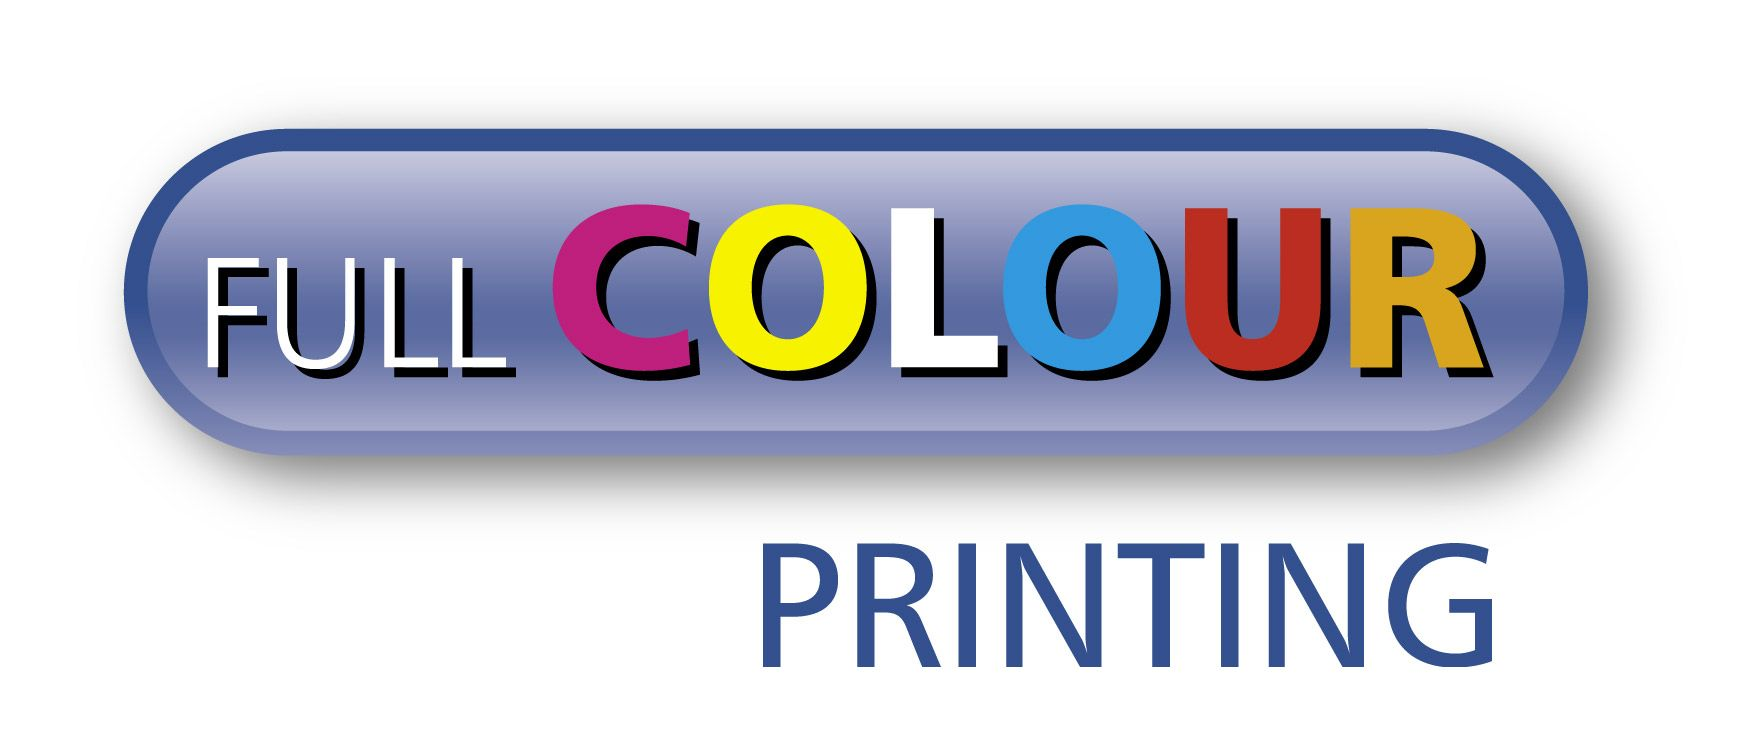 Full Colour Printing Services in Miami | Printing Services ...